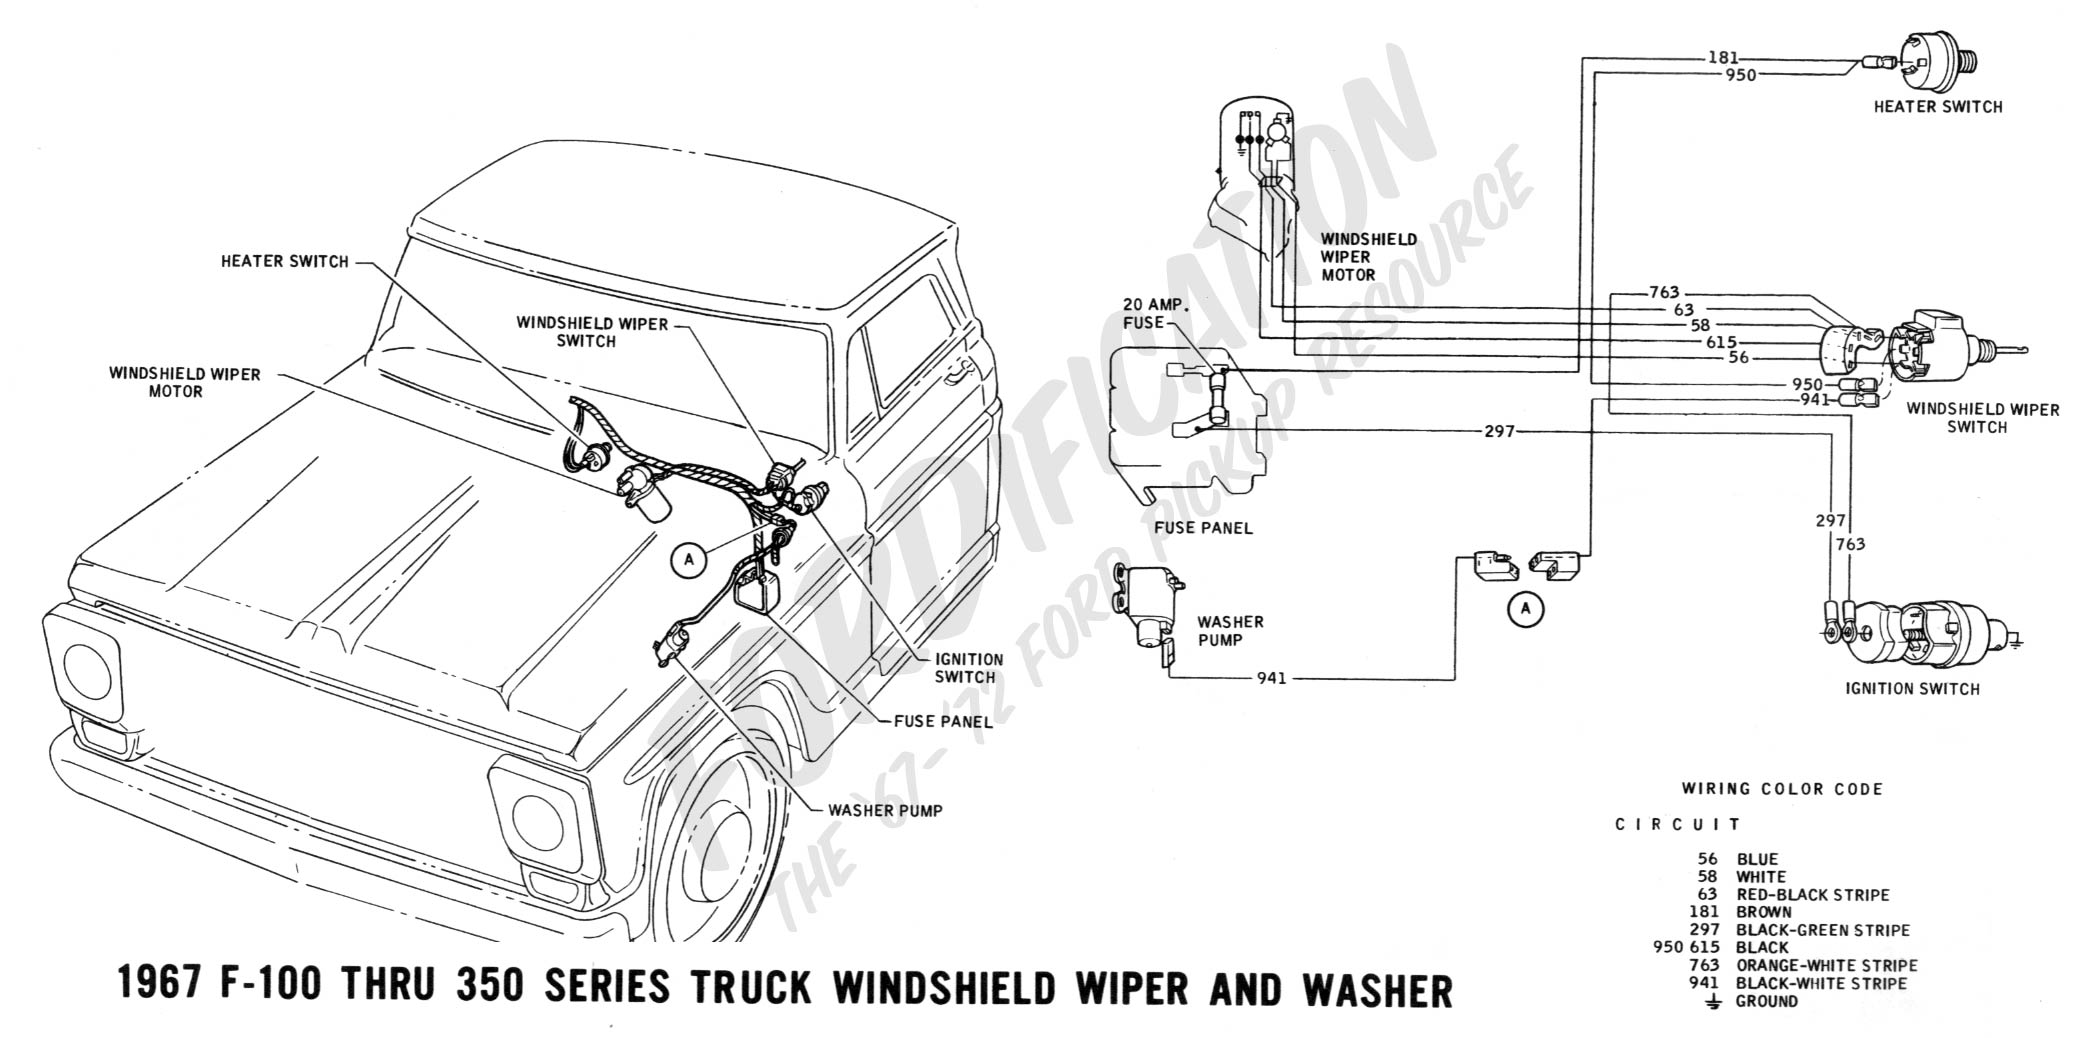 1967 Ford F150 Wiring Diagram Reinvent Your 2005 F 150 Schematic Truck Technical Drawings And Schematics Section H Rh Fordification Com